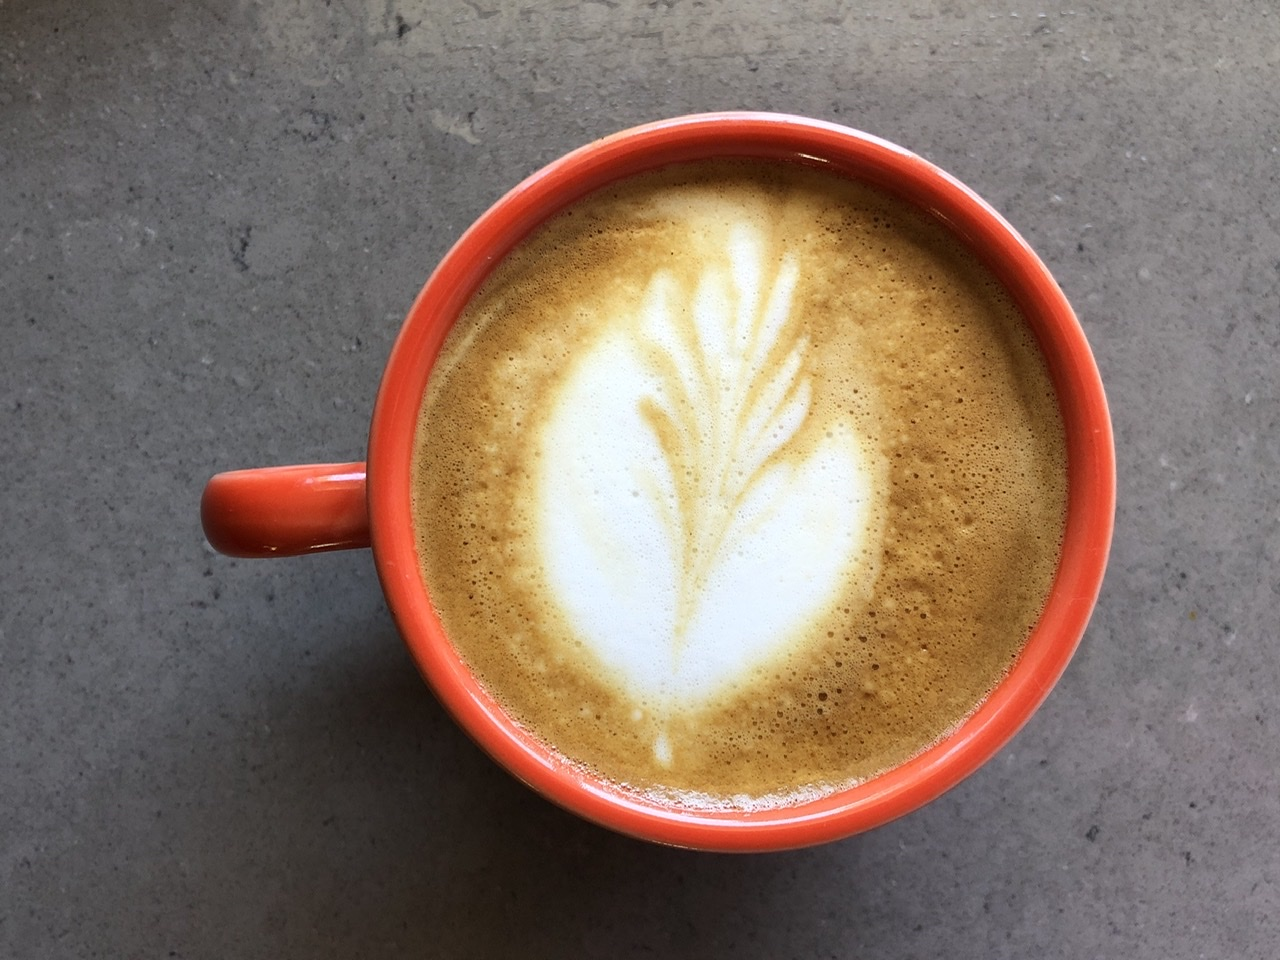 Top-down photo of a cappuccino in an orange mug